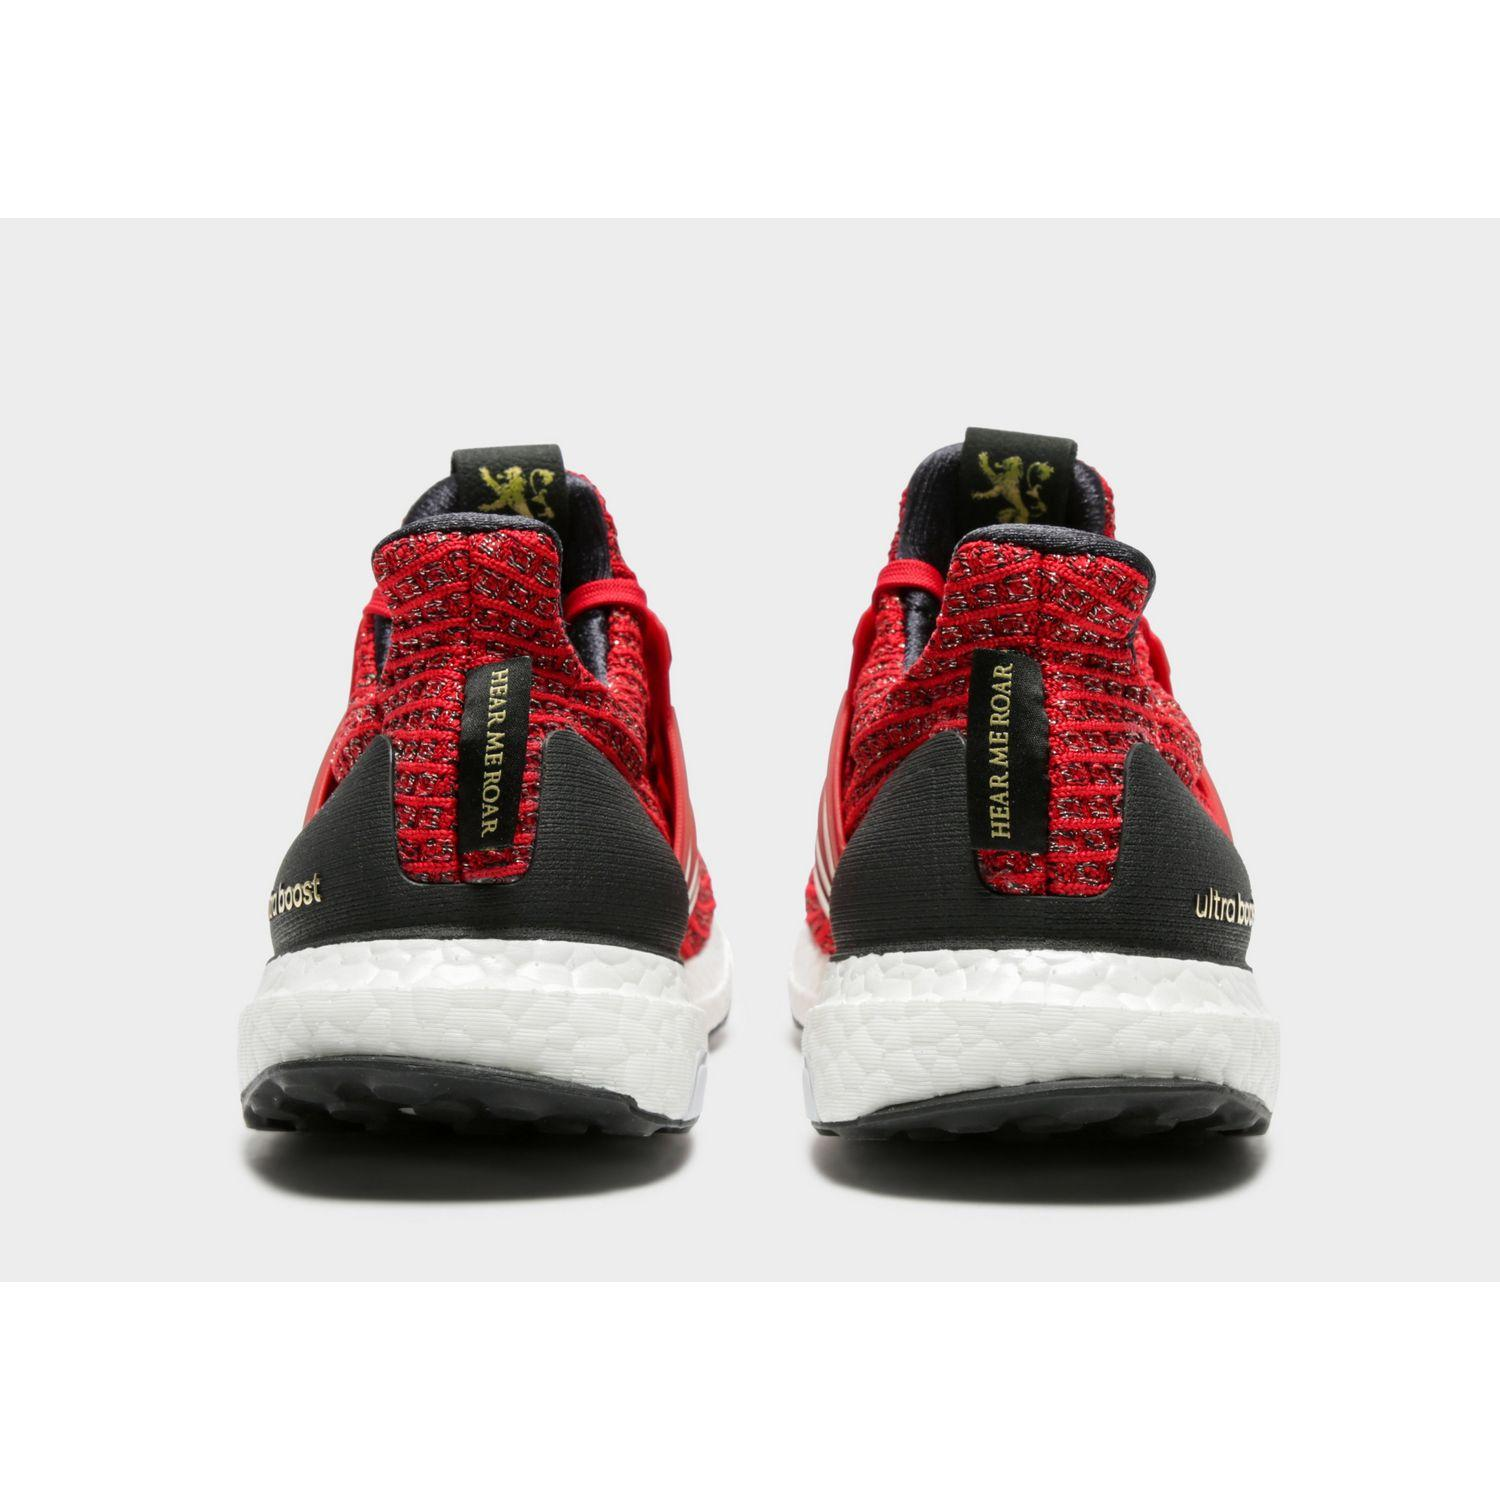 e615cc248ed Adidas - Red Ultraboost X Game Of Thrones Shoes for Men - Lyst. View  fullscreen